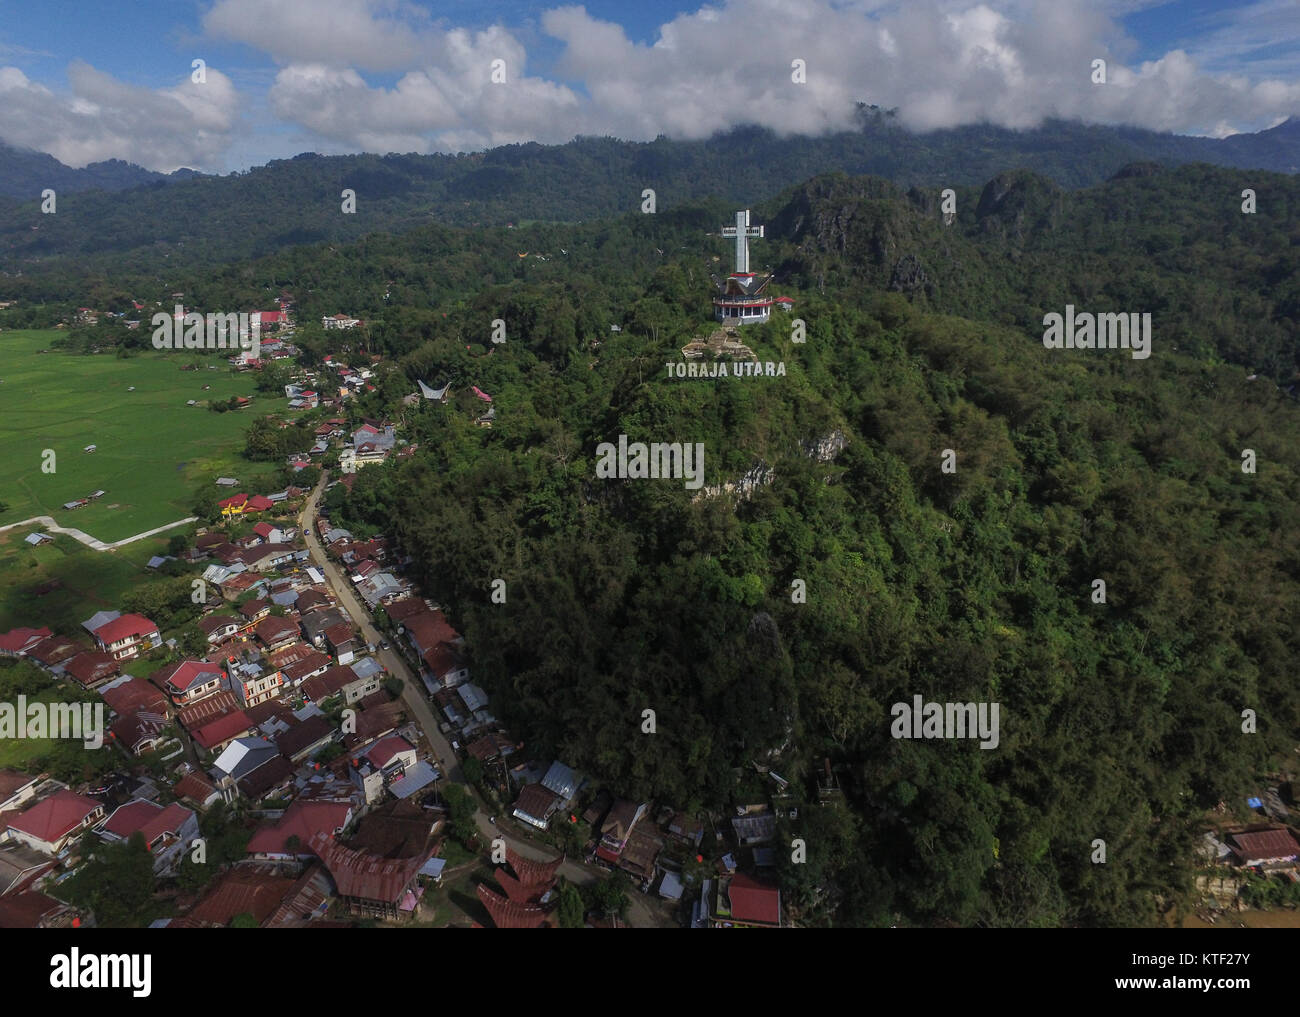 Huge Jesus cross in the city of Rantepao in the regency of North Toraja (Toraja Utara) - Indonesia. - Stock Image